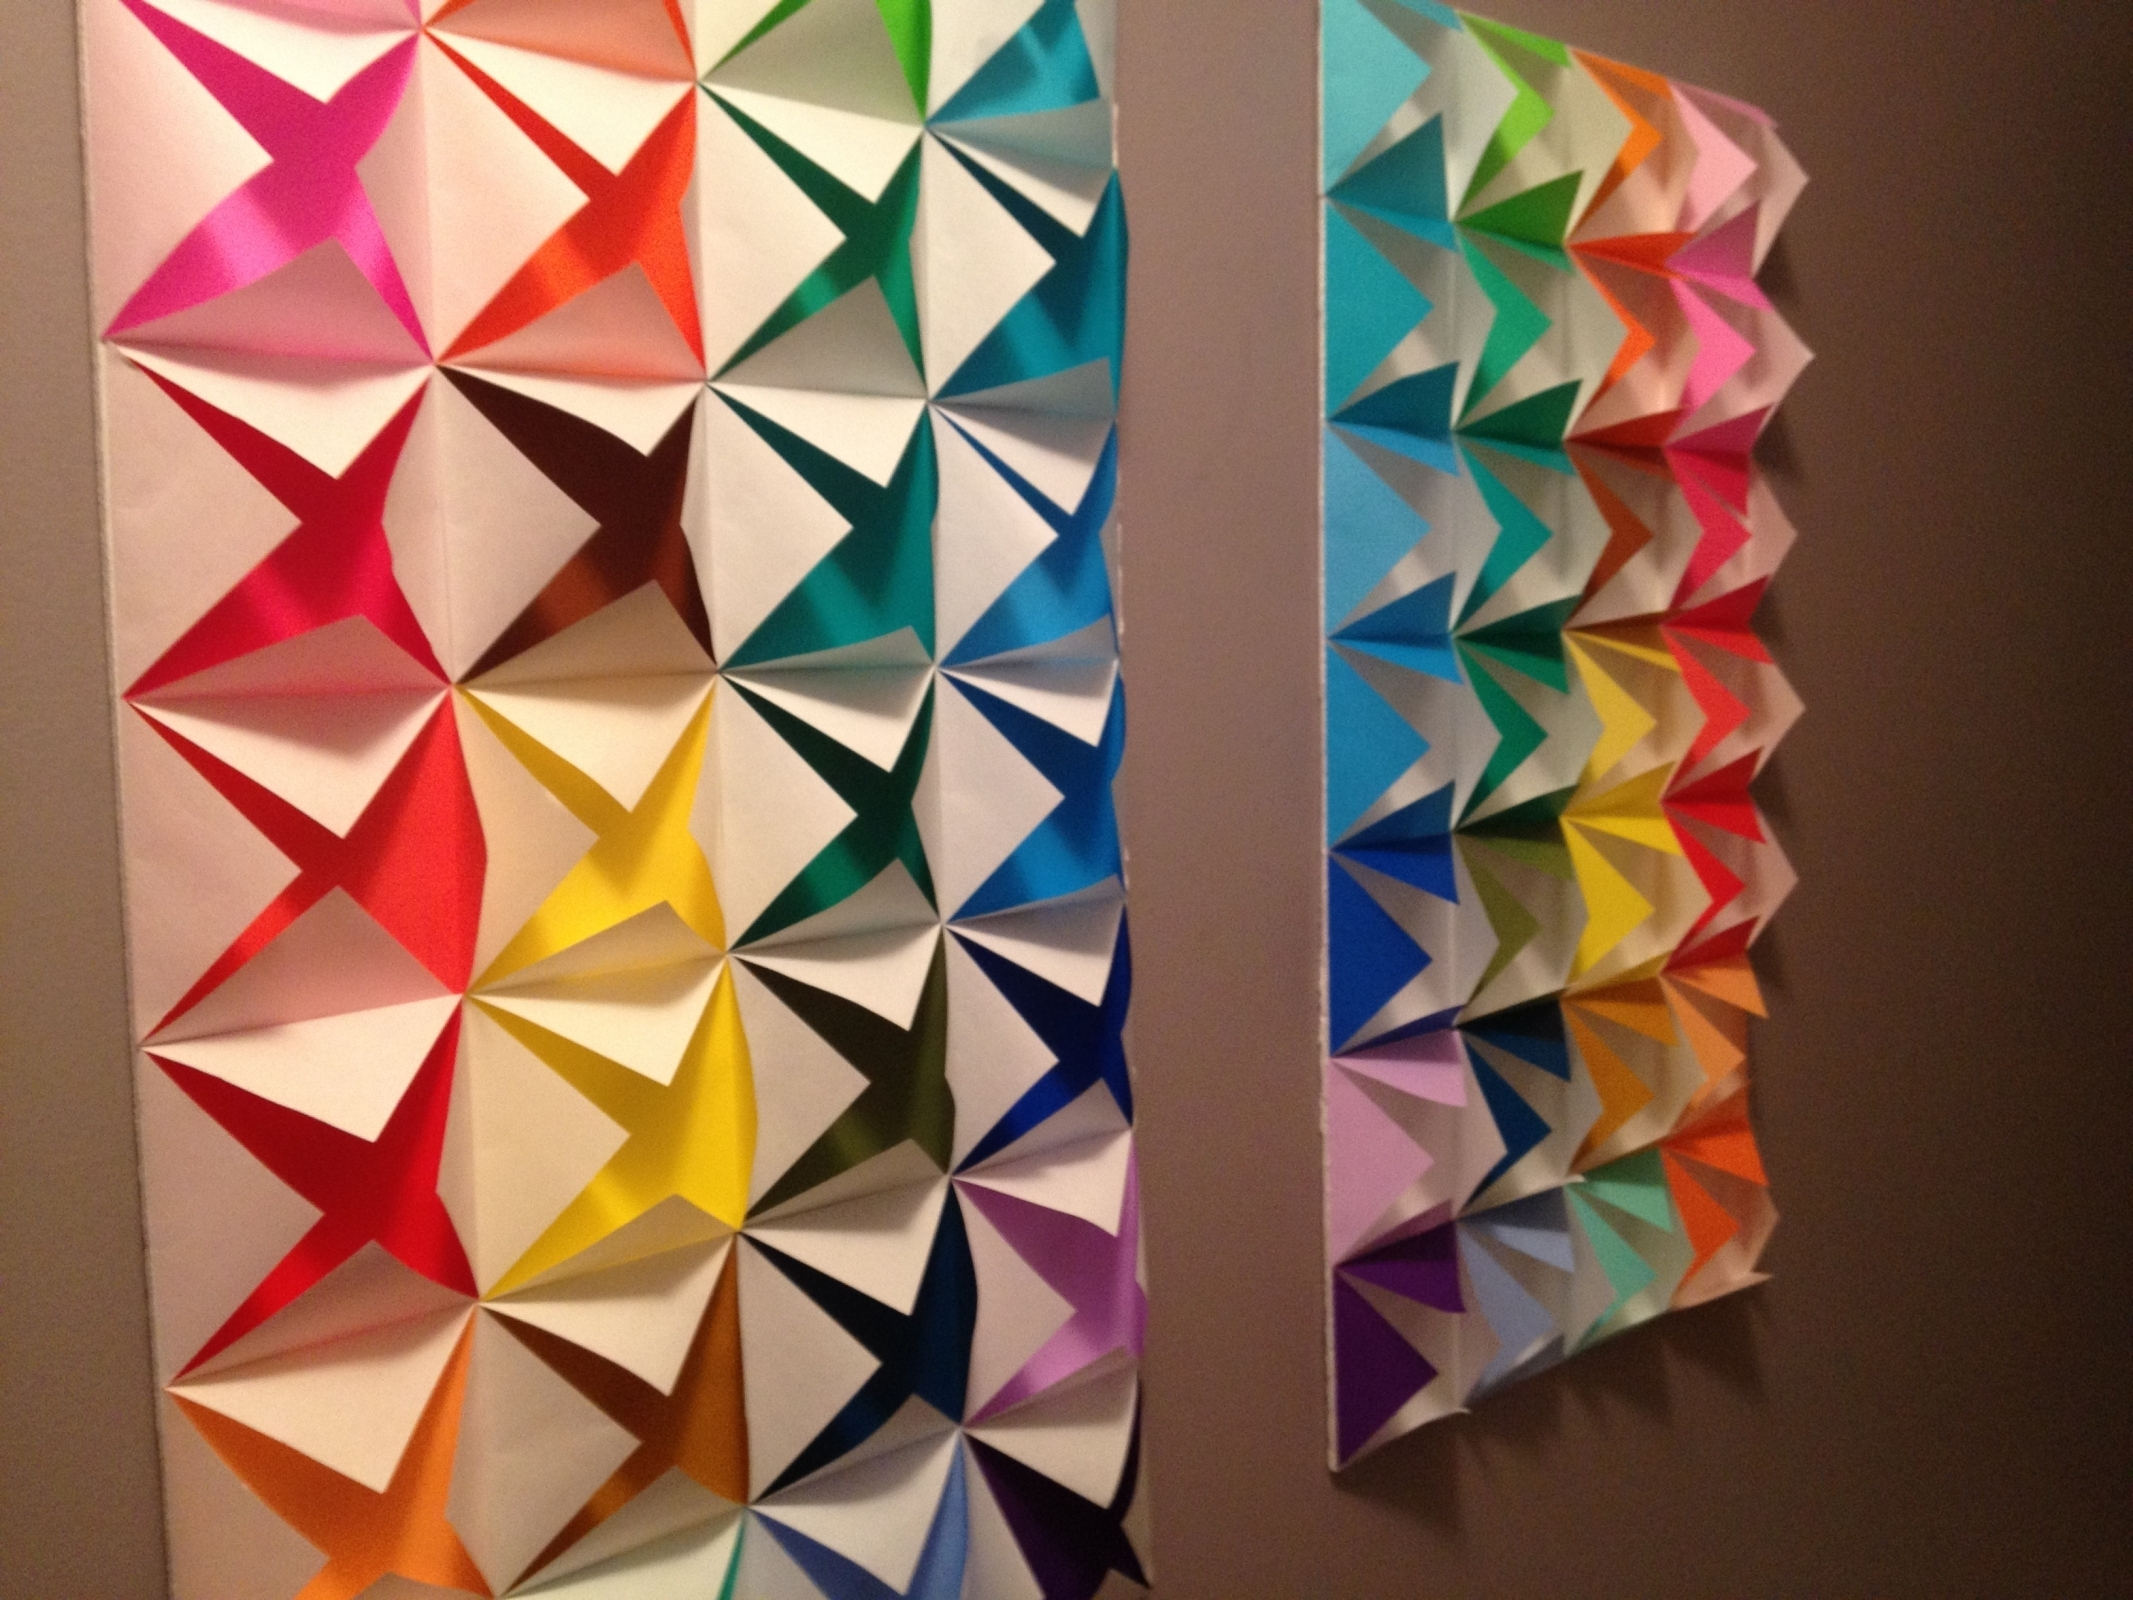 Origami, Walls Pertaining To 3D Wall Art With Paper (View 12 of 15)